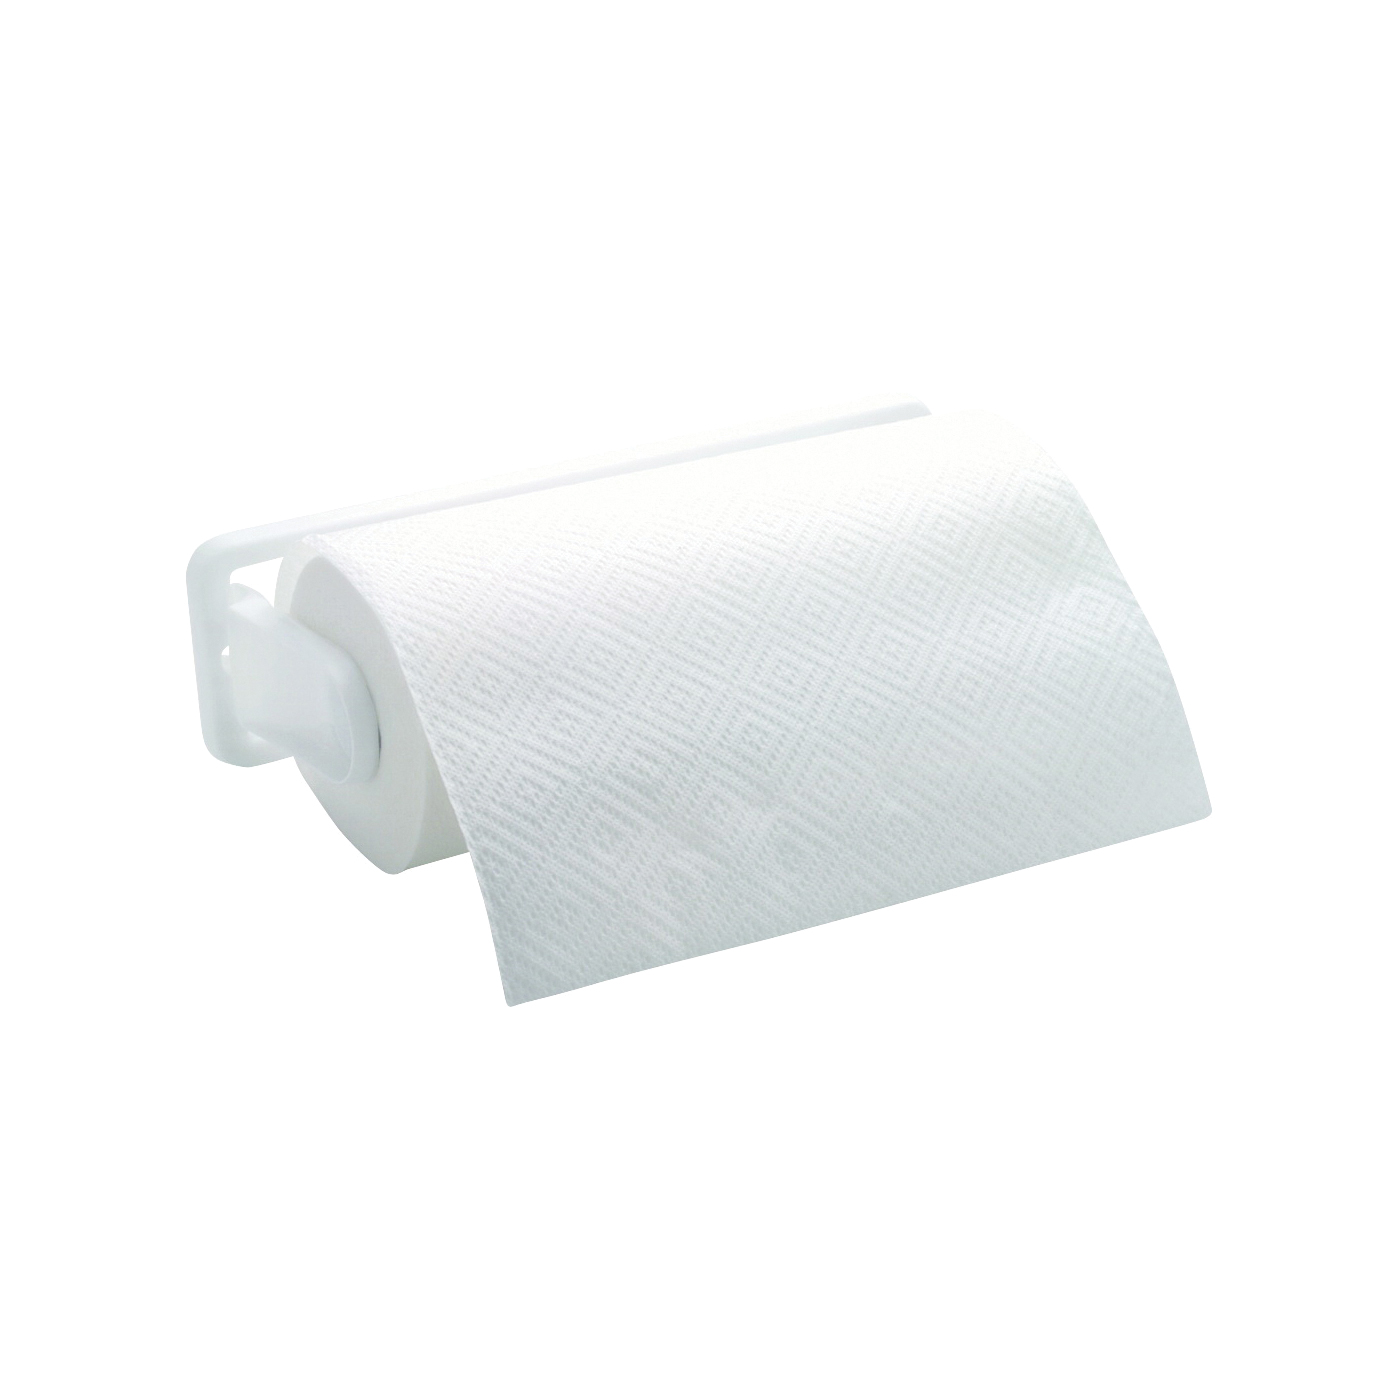 Picture of Rubbermaid 236187WHT Paper Towel Holder, 14.09 in OAW, Plastic, White